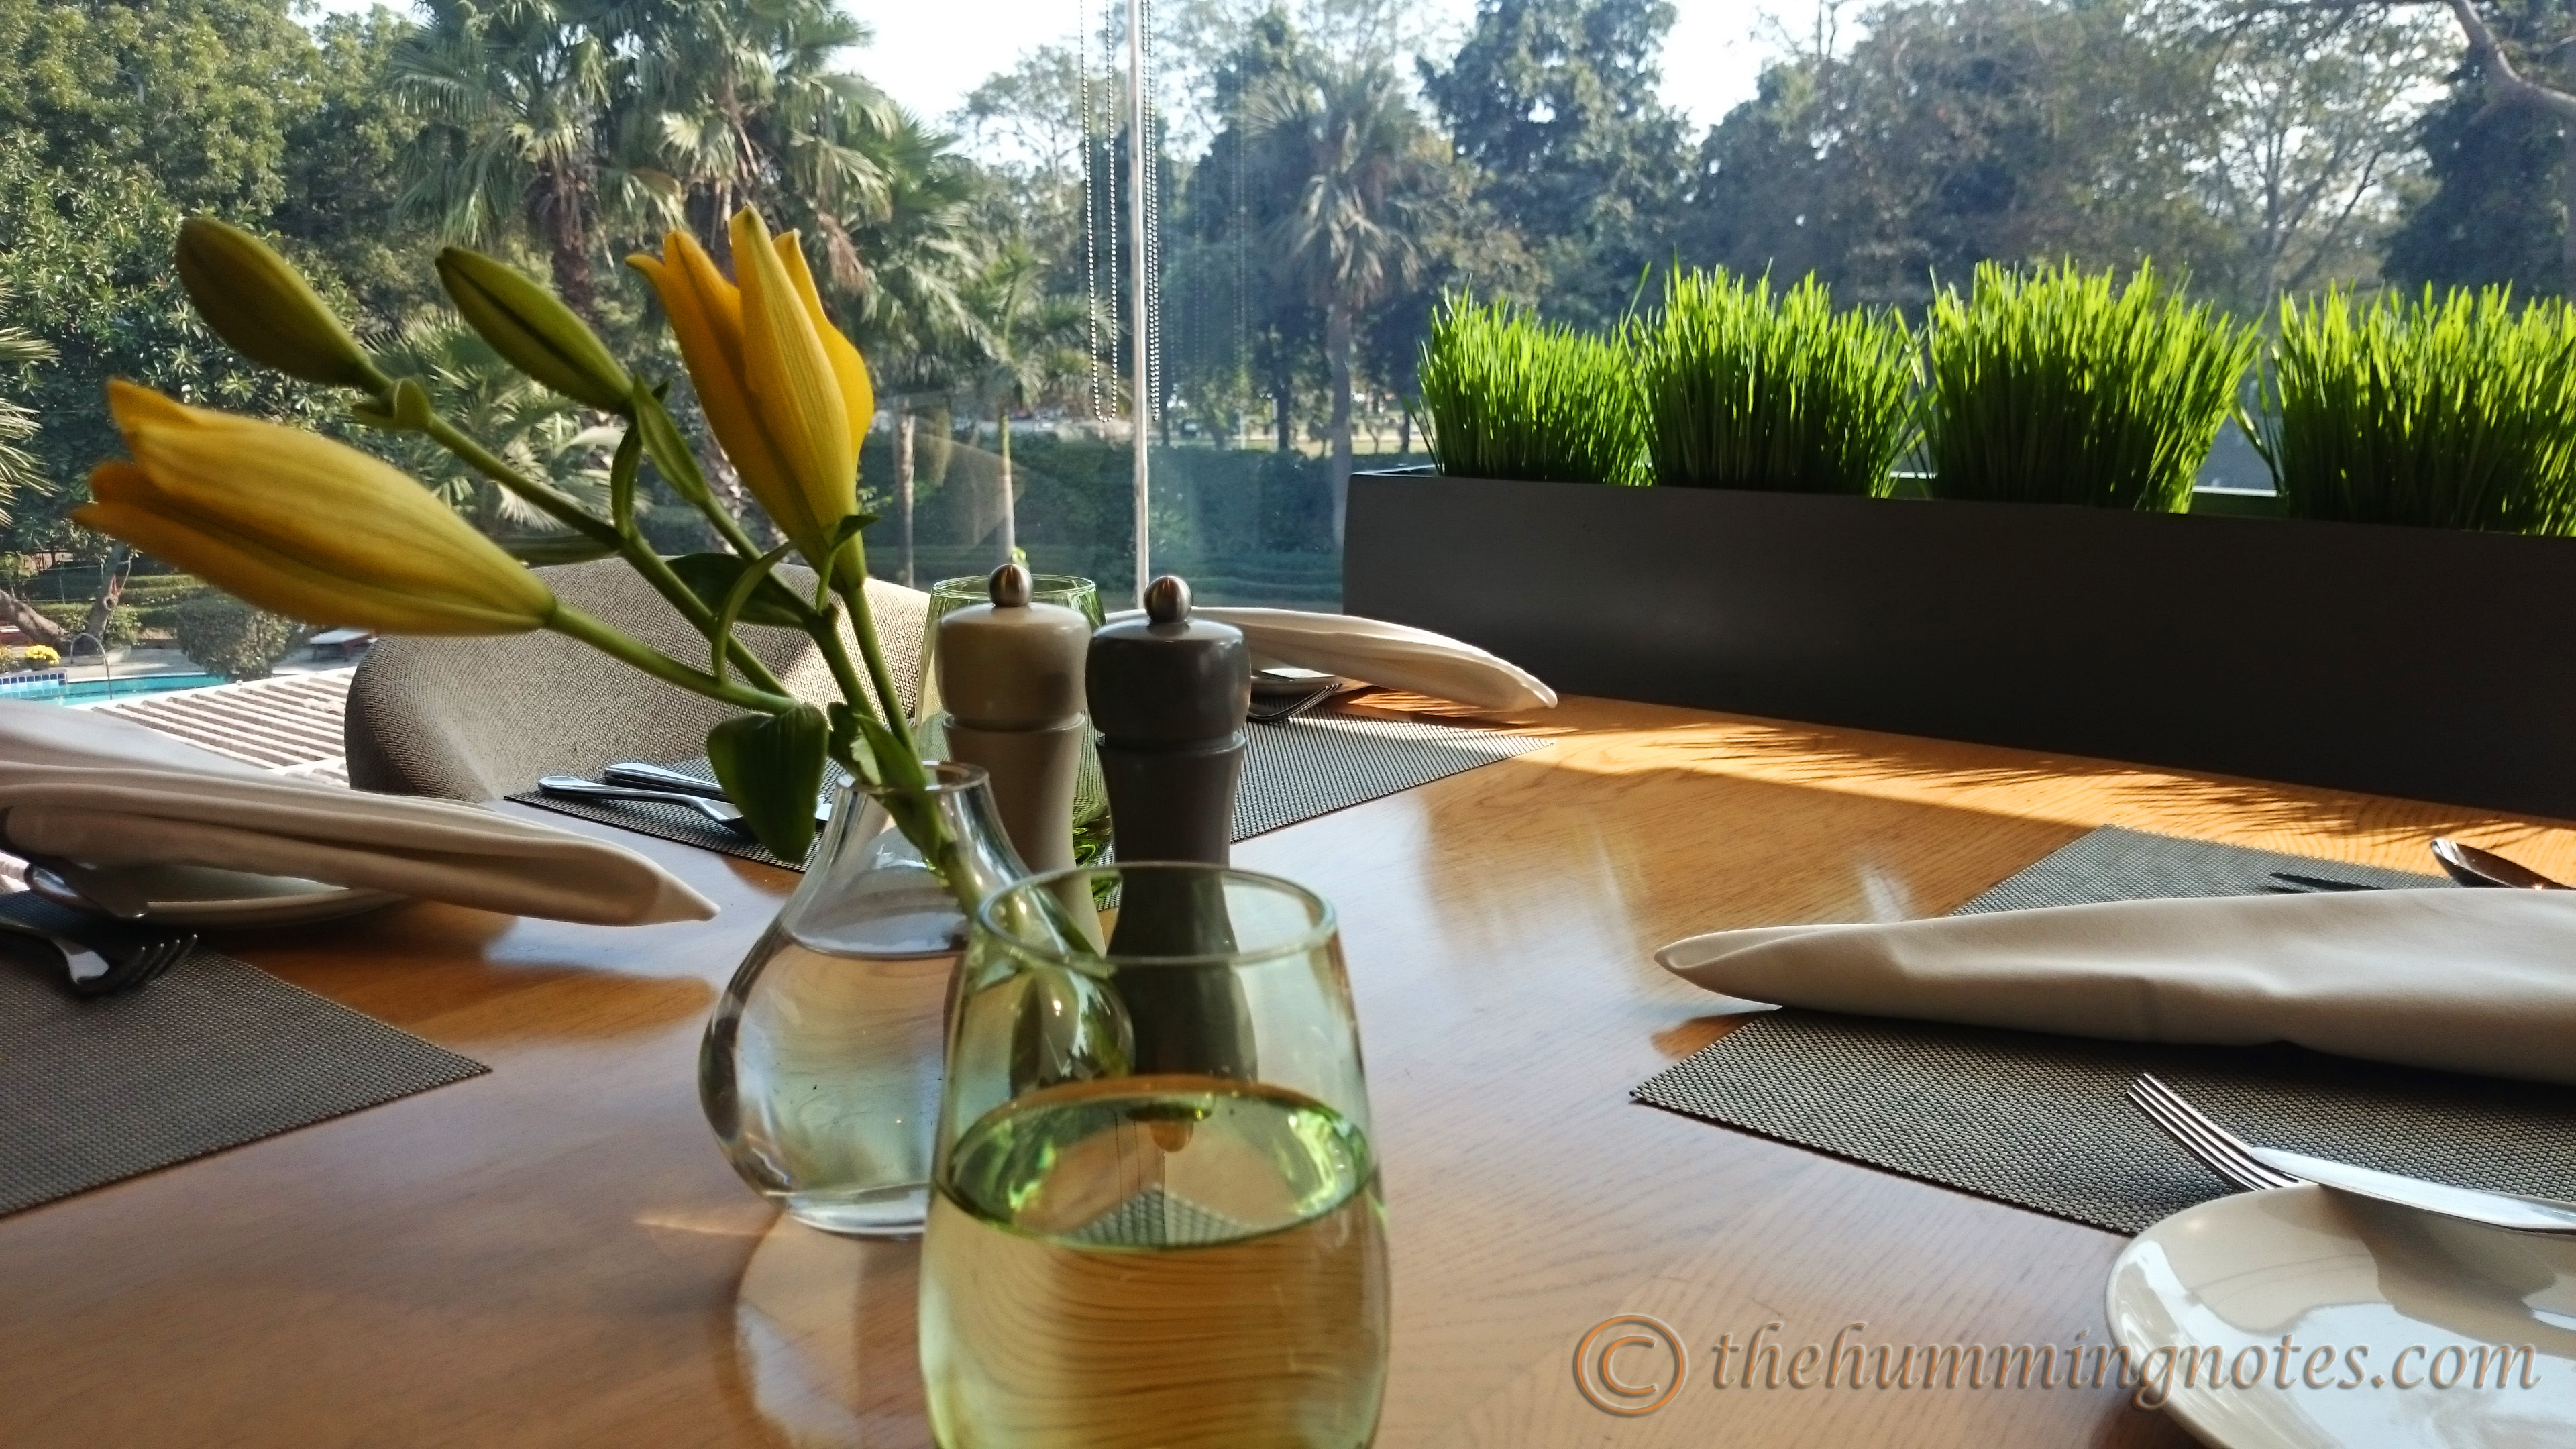 Tamra offers a beautiful view to its guests. A perfect location to enjoy your lazy Sunday brunches